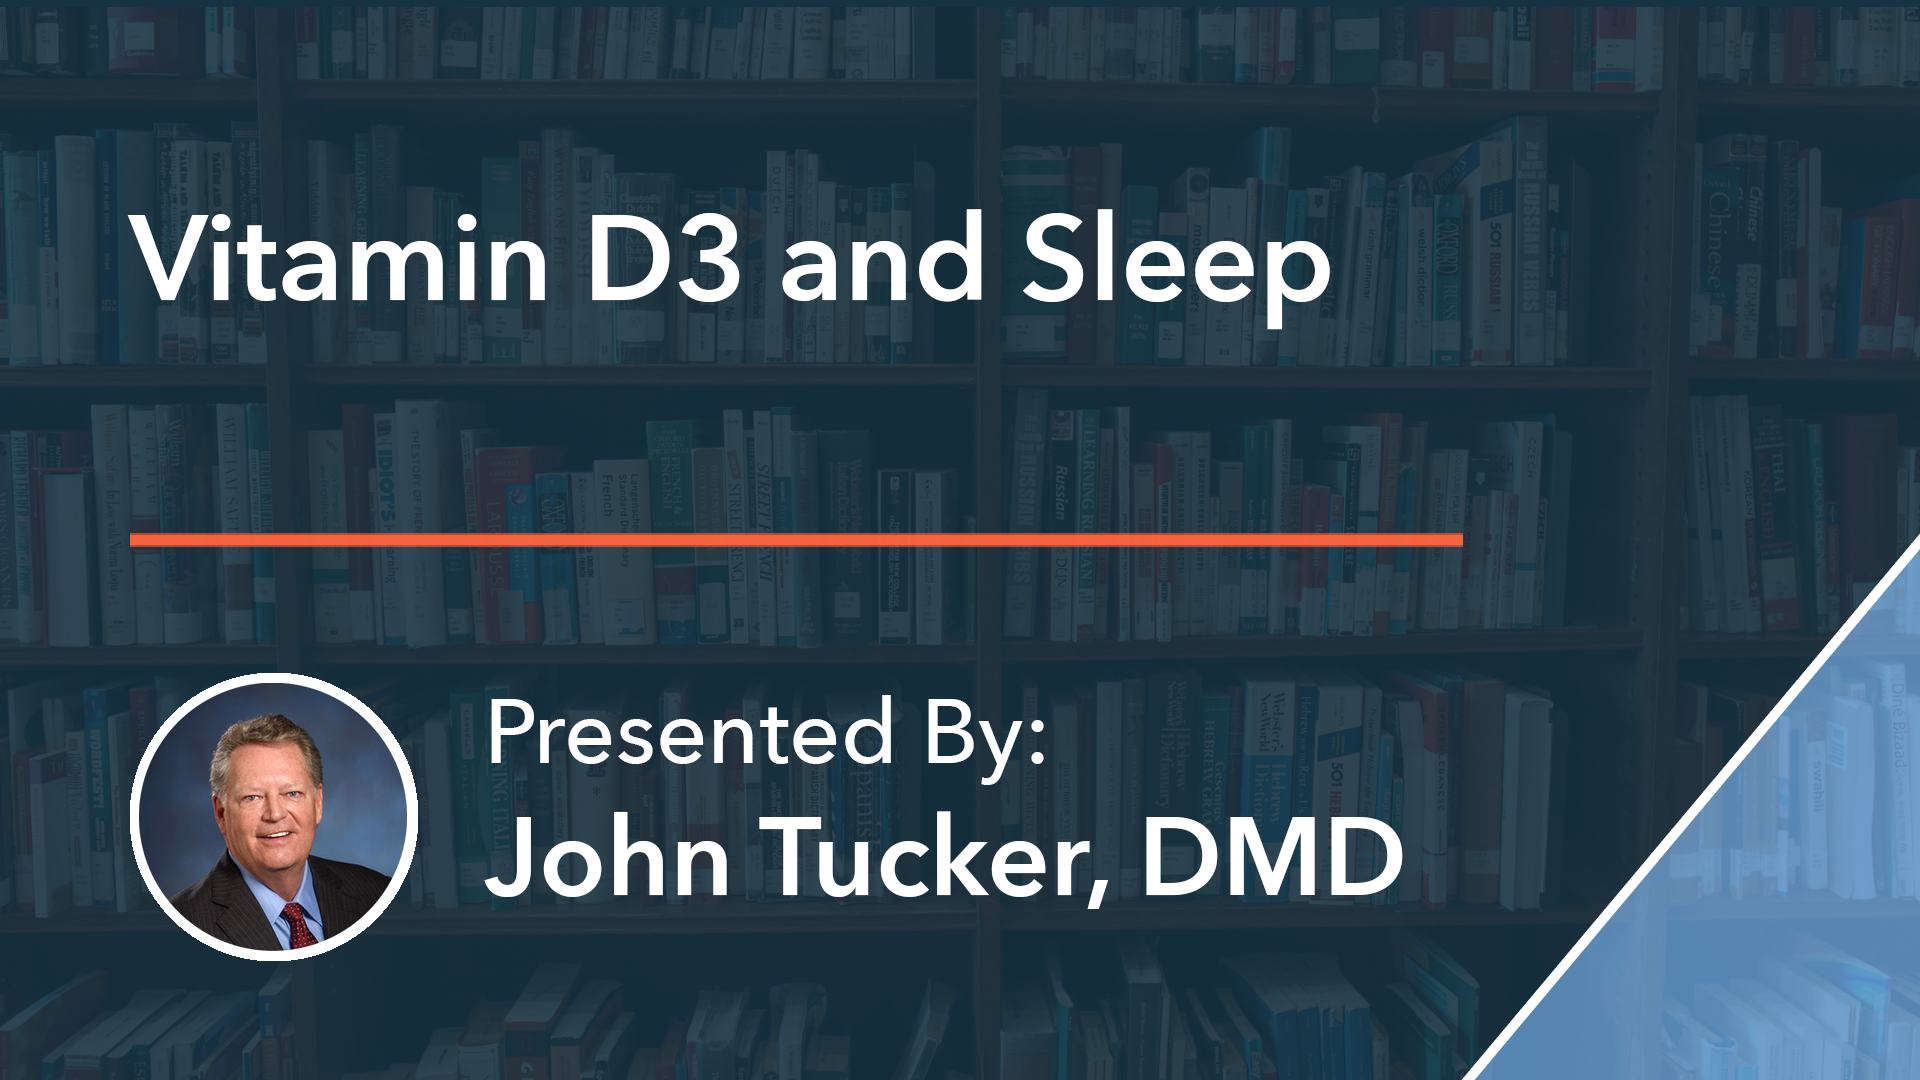 Vitamin D3 and Sleep Dr John Tucker